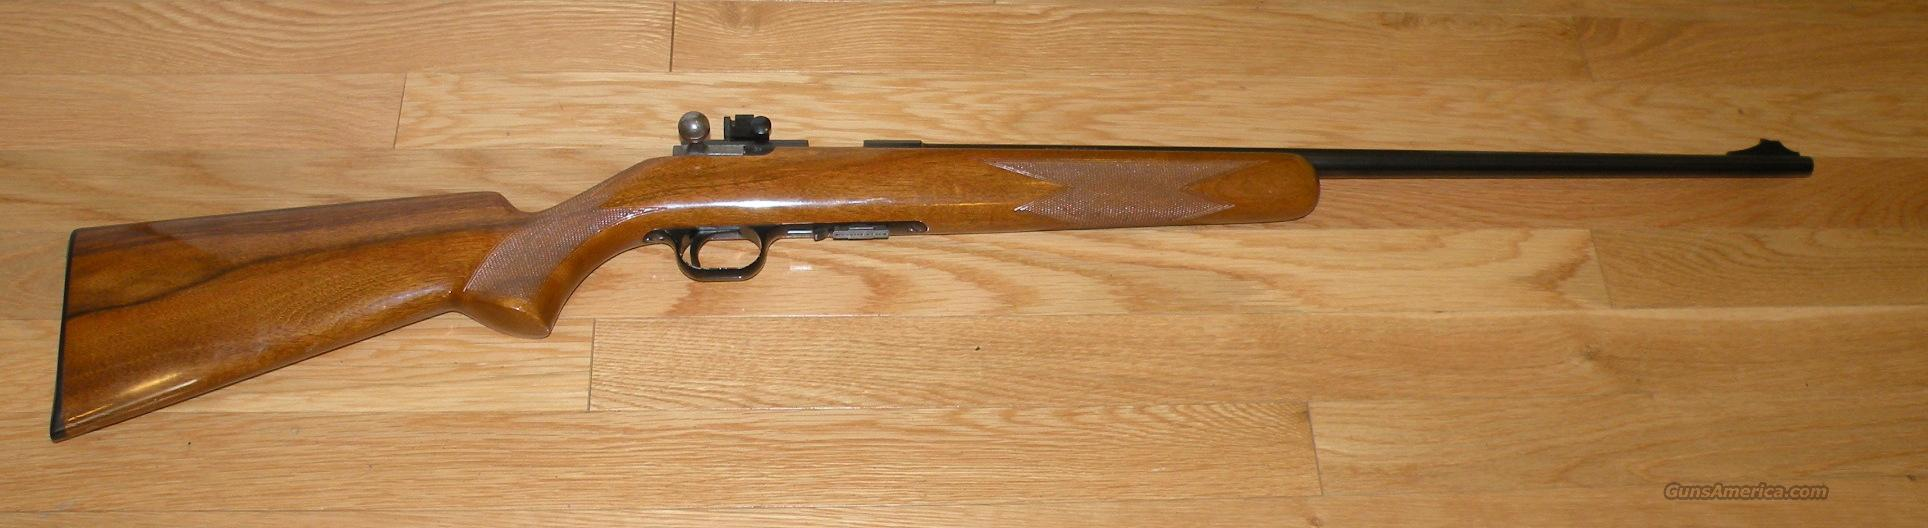 Browning, T-2 Deluxe, Straight Pull, bolt action rifle  Guns > Rifles > Browning Rifles > Bolt Action > Hunting > Blue